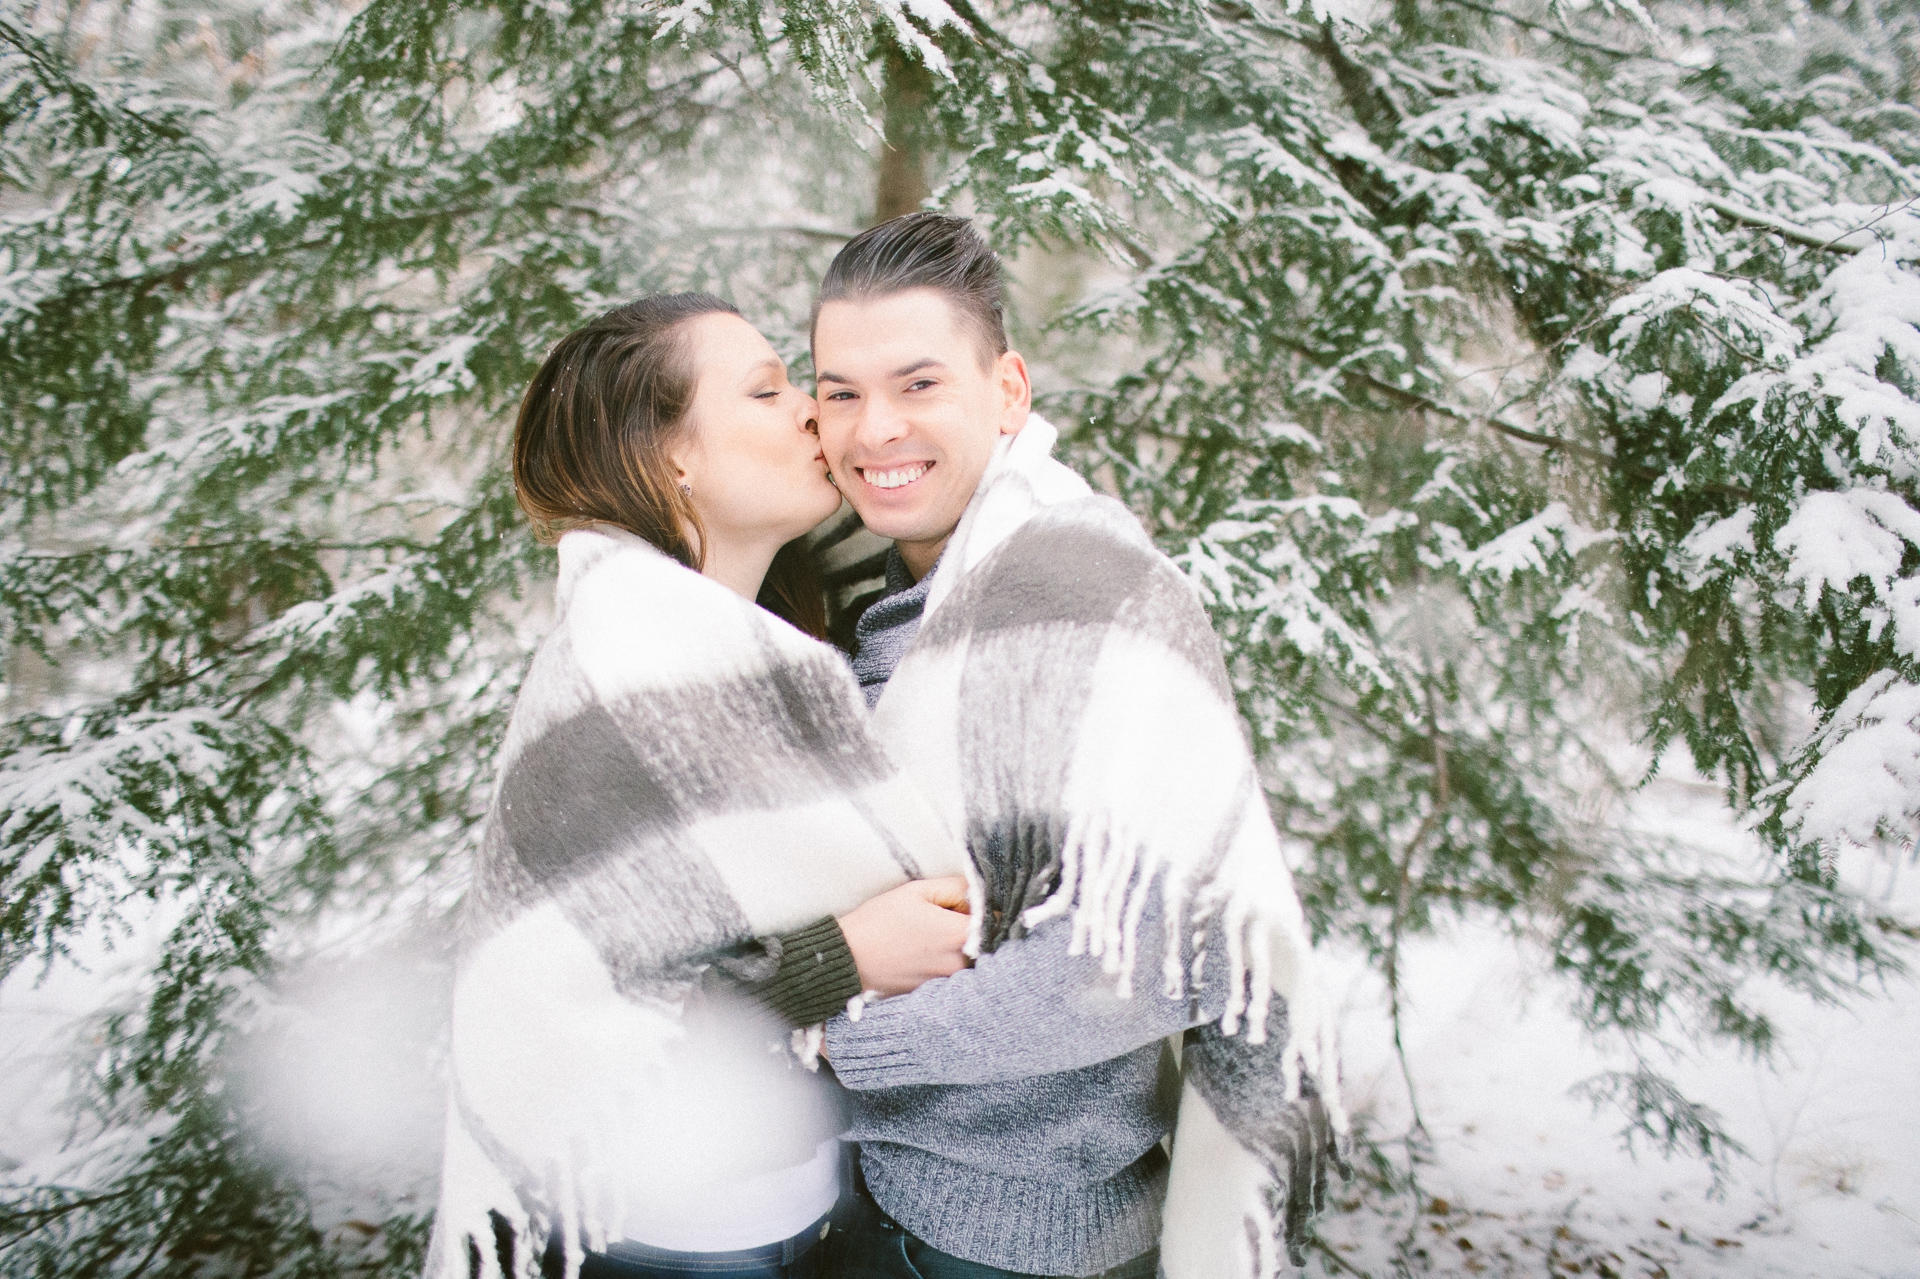 Cleveland Snowy Winter Engagement Session in Chagrin Metroparks 24.jpg